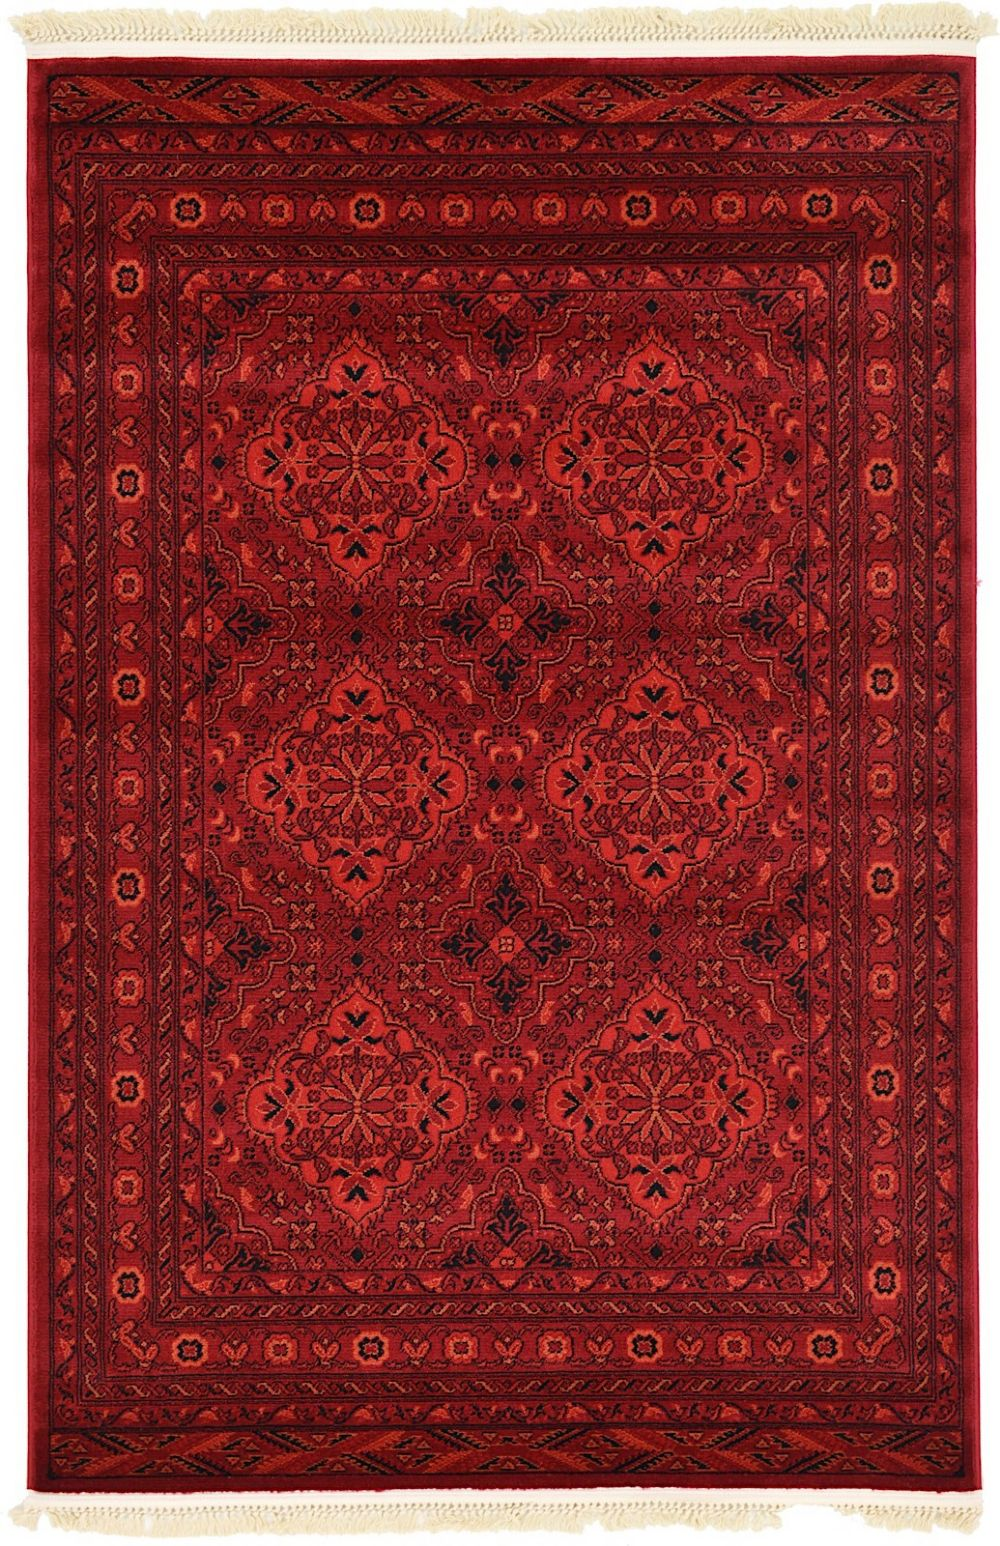 rugpal ottoman traditional area rug collection